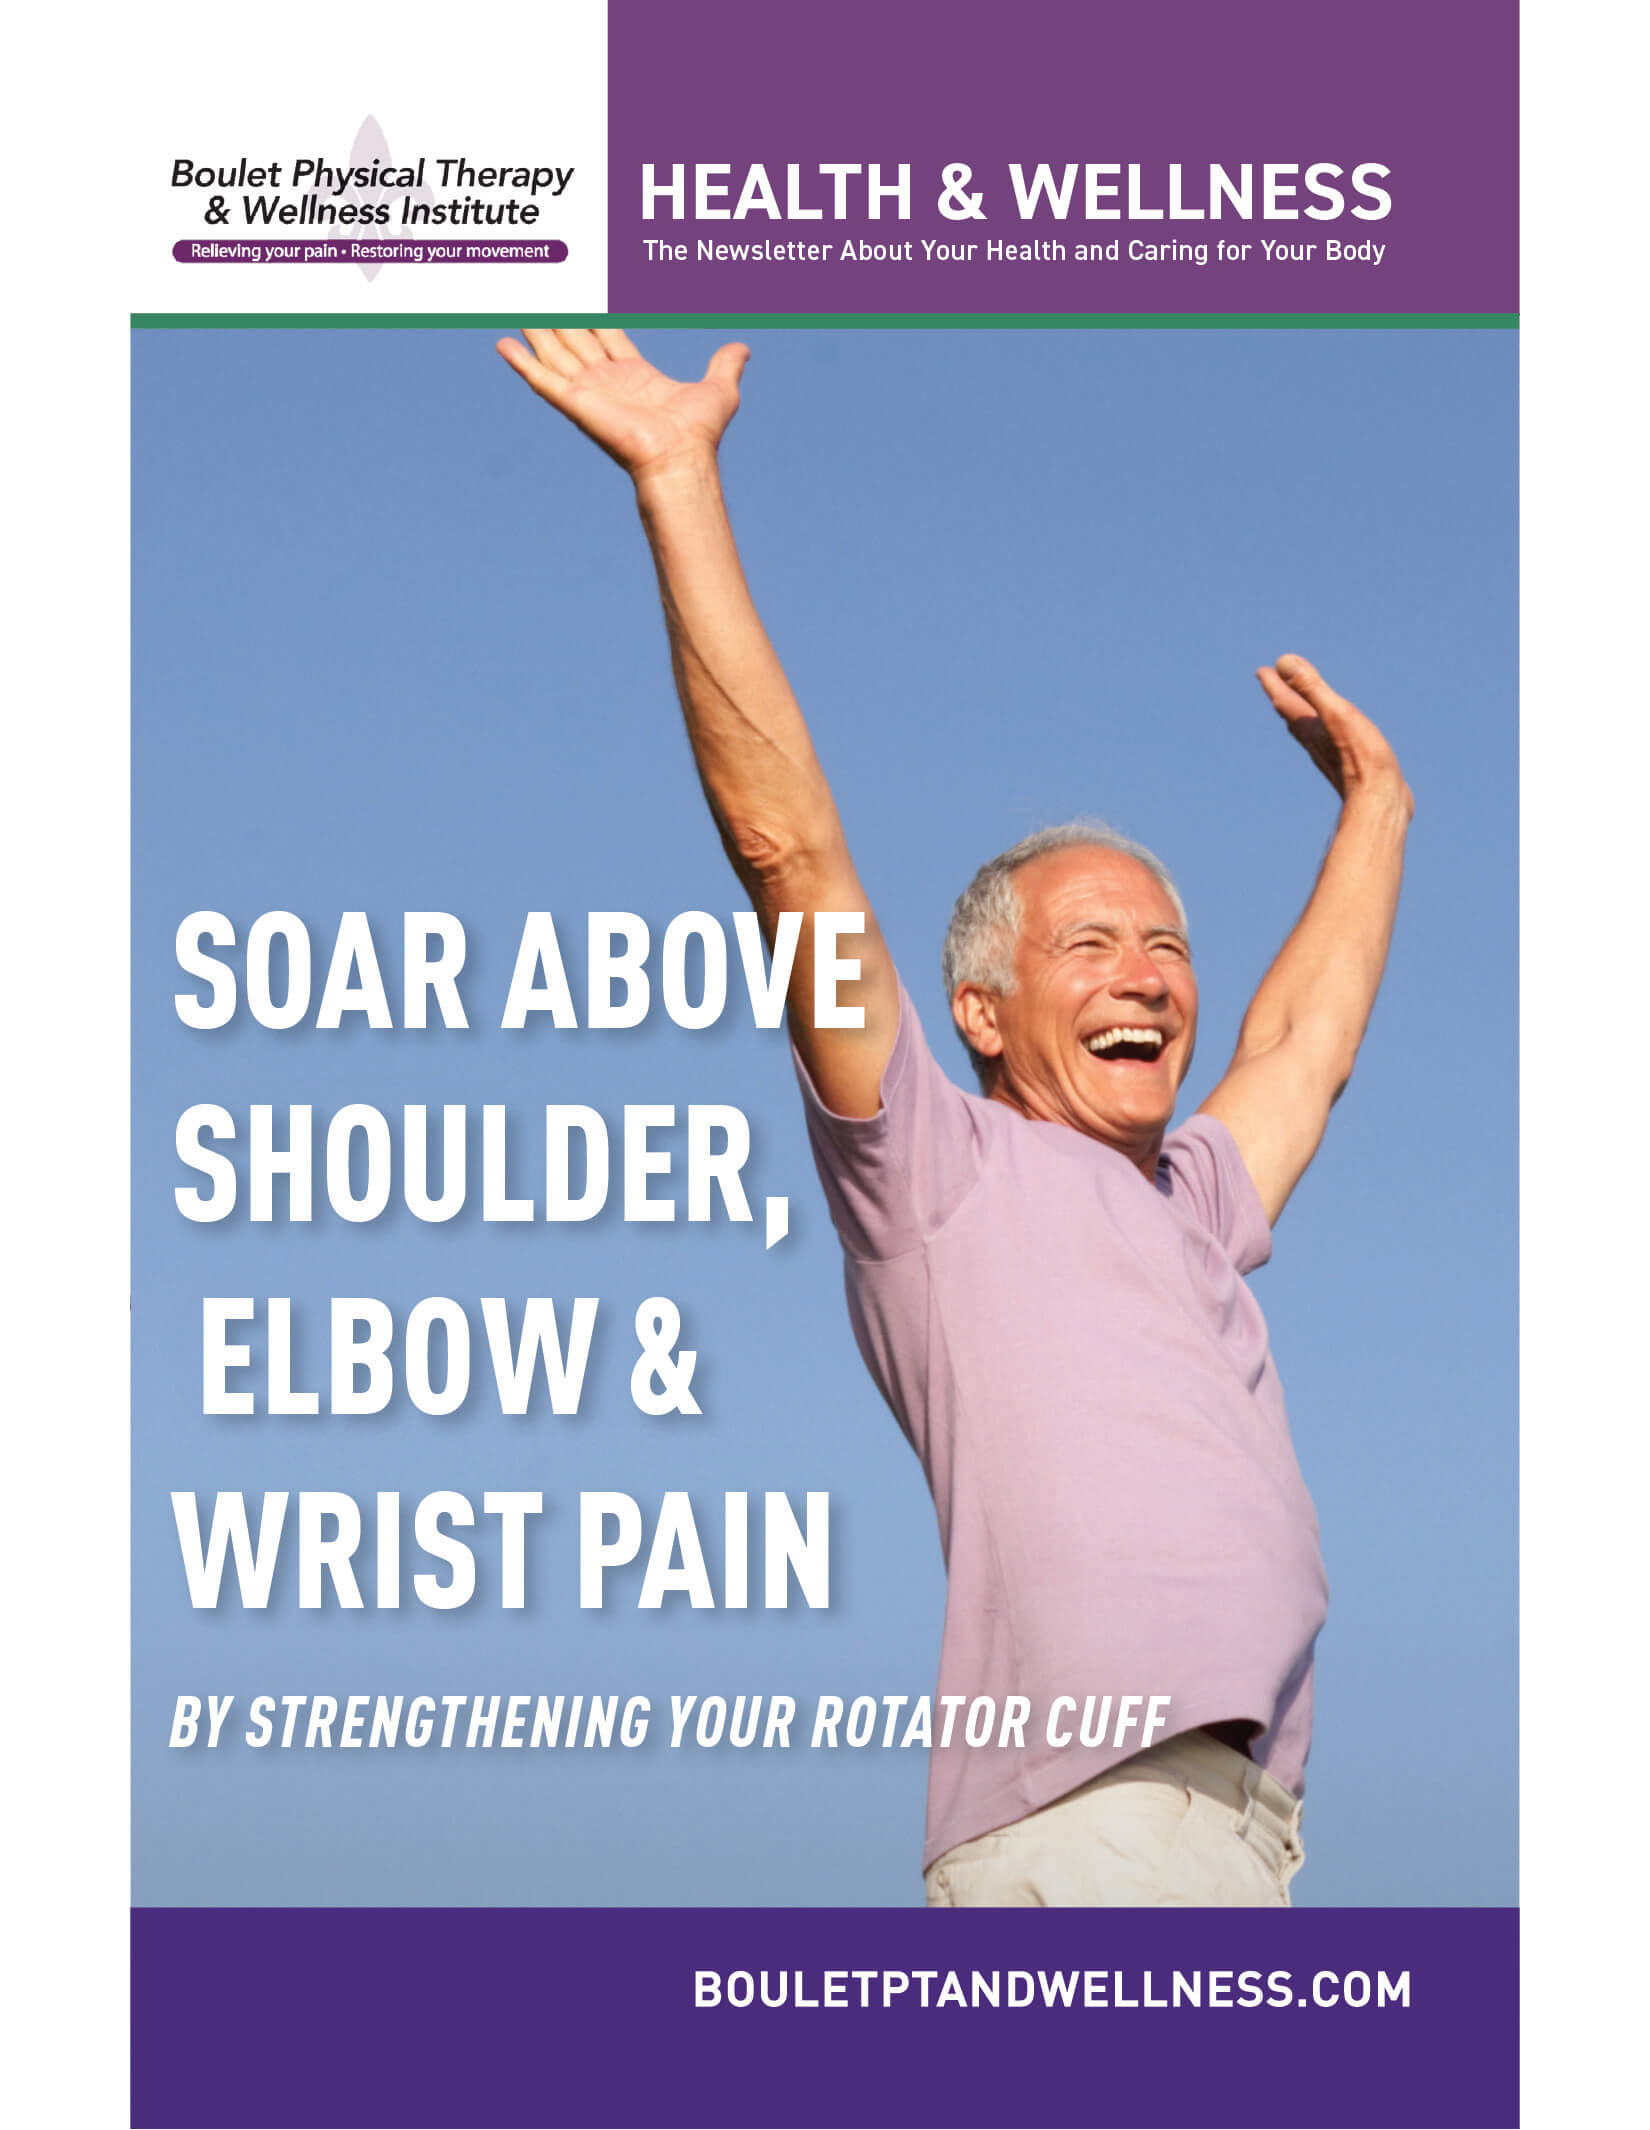 Soar Above Shoulder, Elbow & Wrist Pain